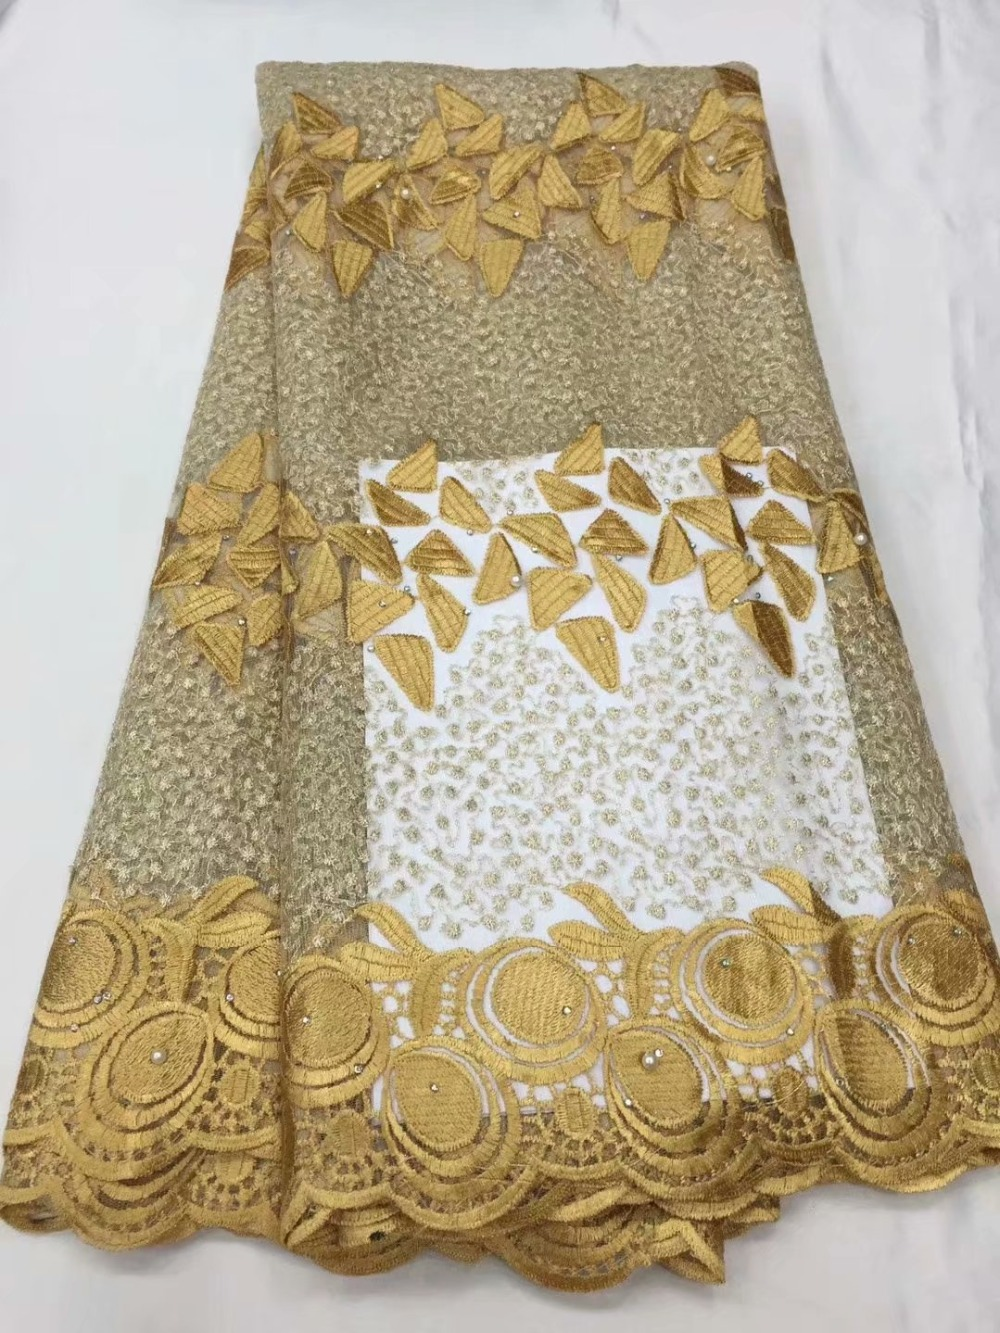 French Embroidered Lace Fabric 2019 Latest African Mesh Tulle Bead Lace Fabric 5Y Nigerian Guipure Lace Fabric